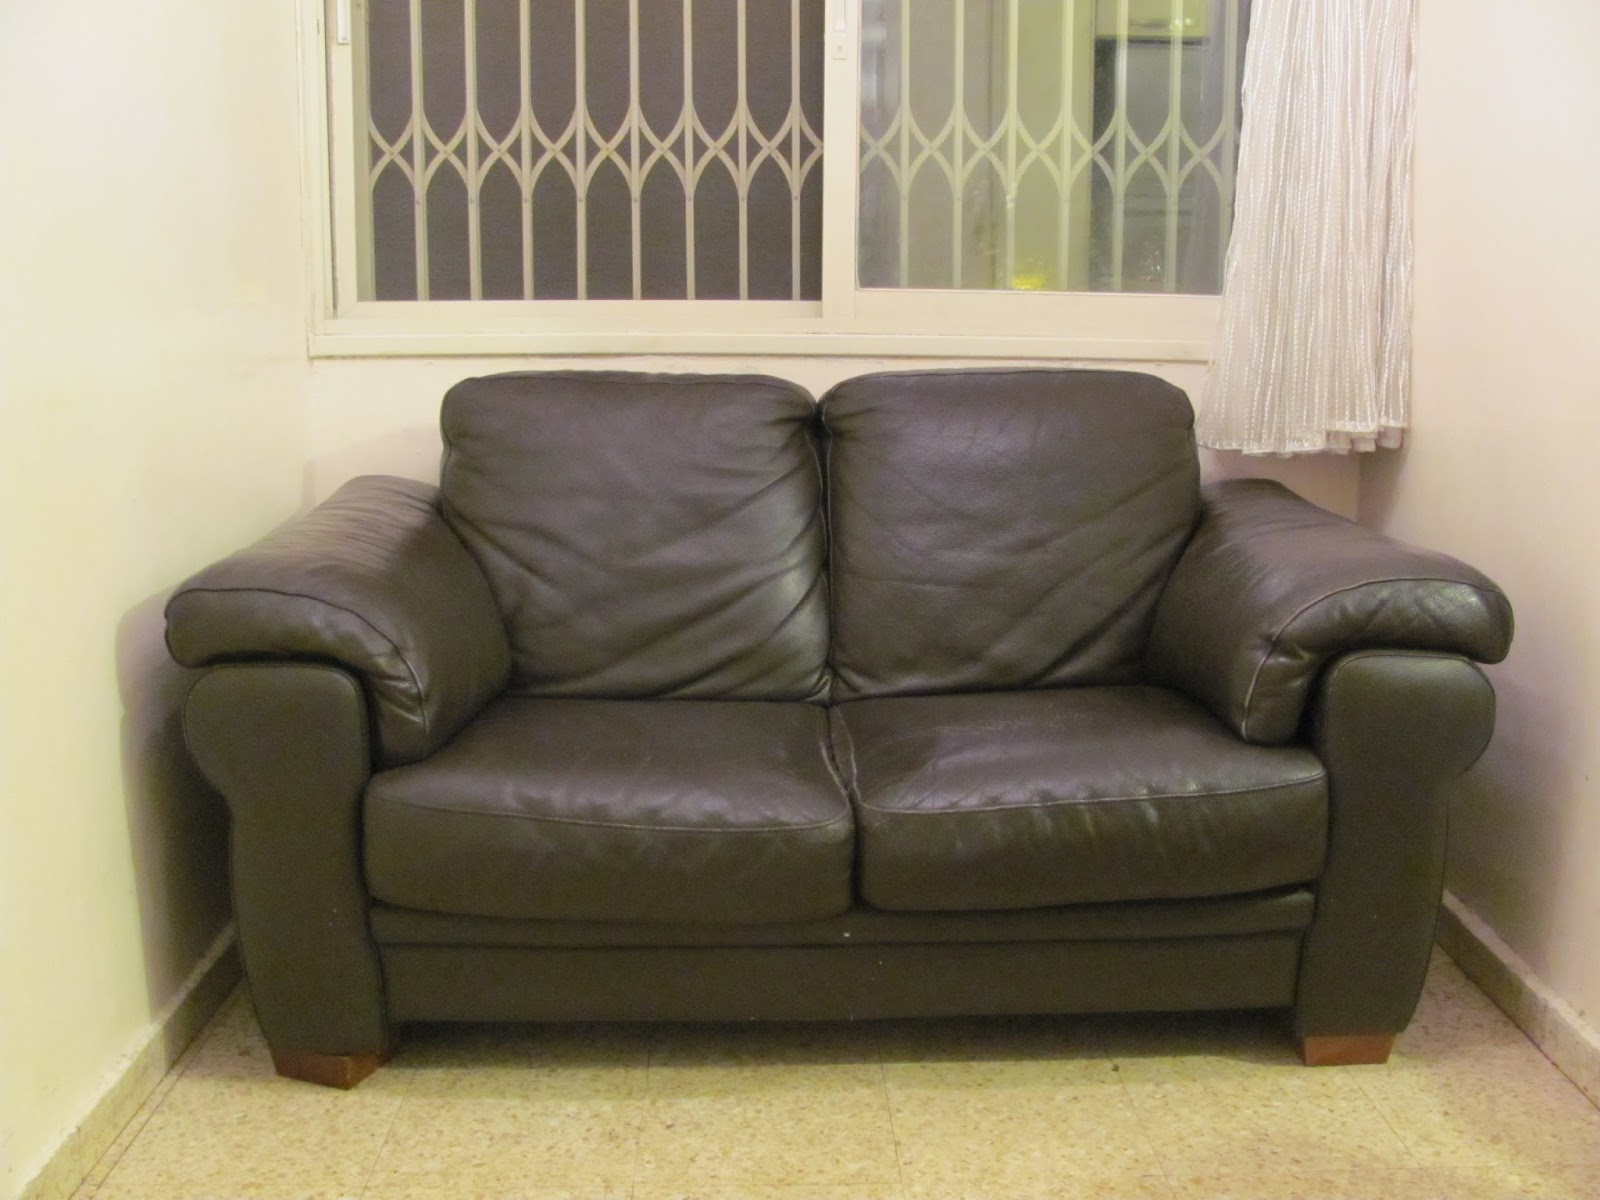 3-seater, 2200 shekel 2-seater, 1500 shekel or both together, 2500 shekel!  or best offer. Excellent quality and super comfortable and durable